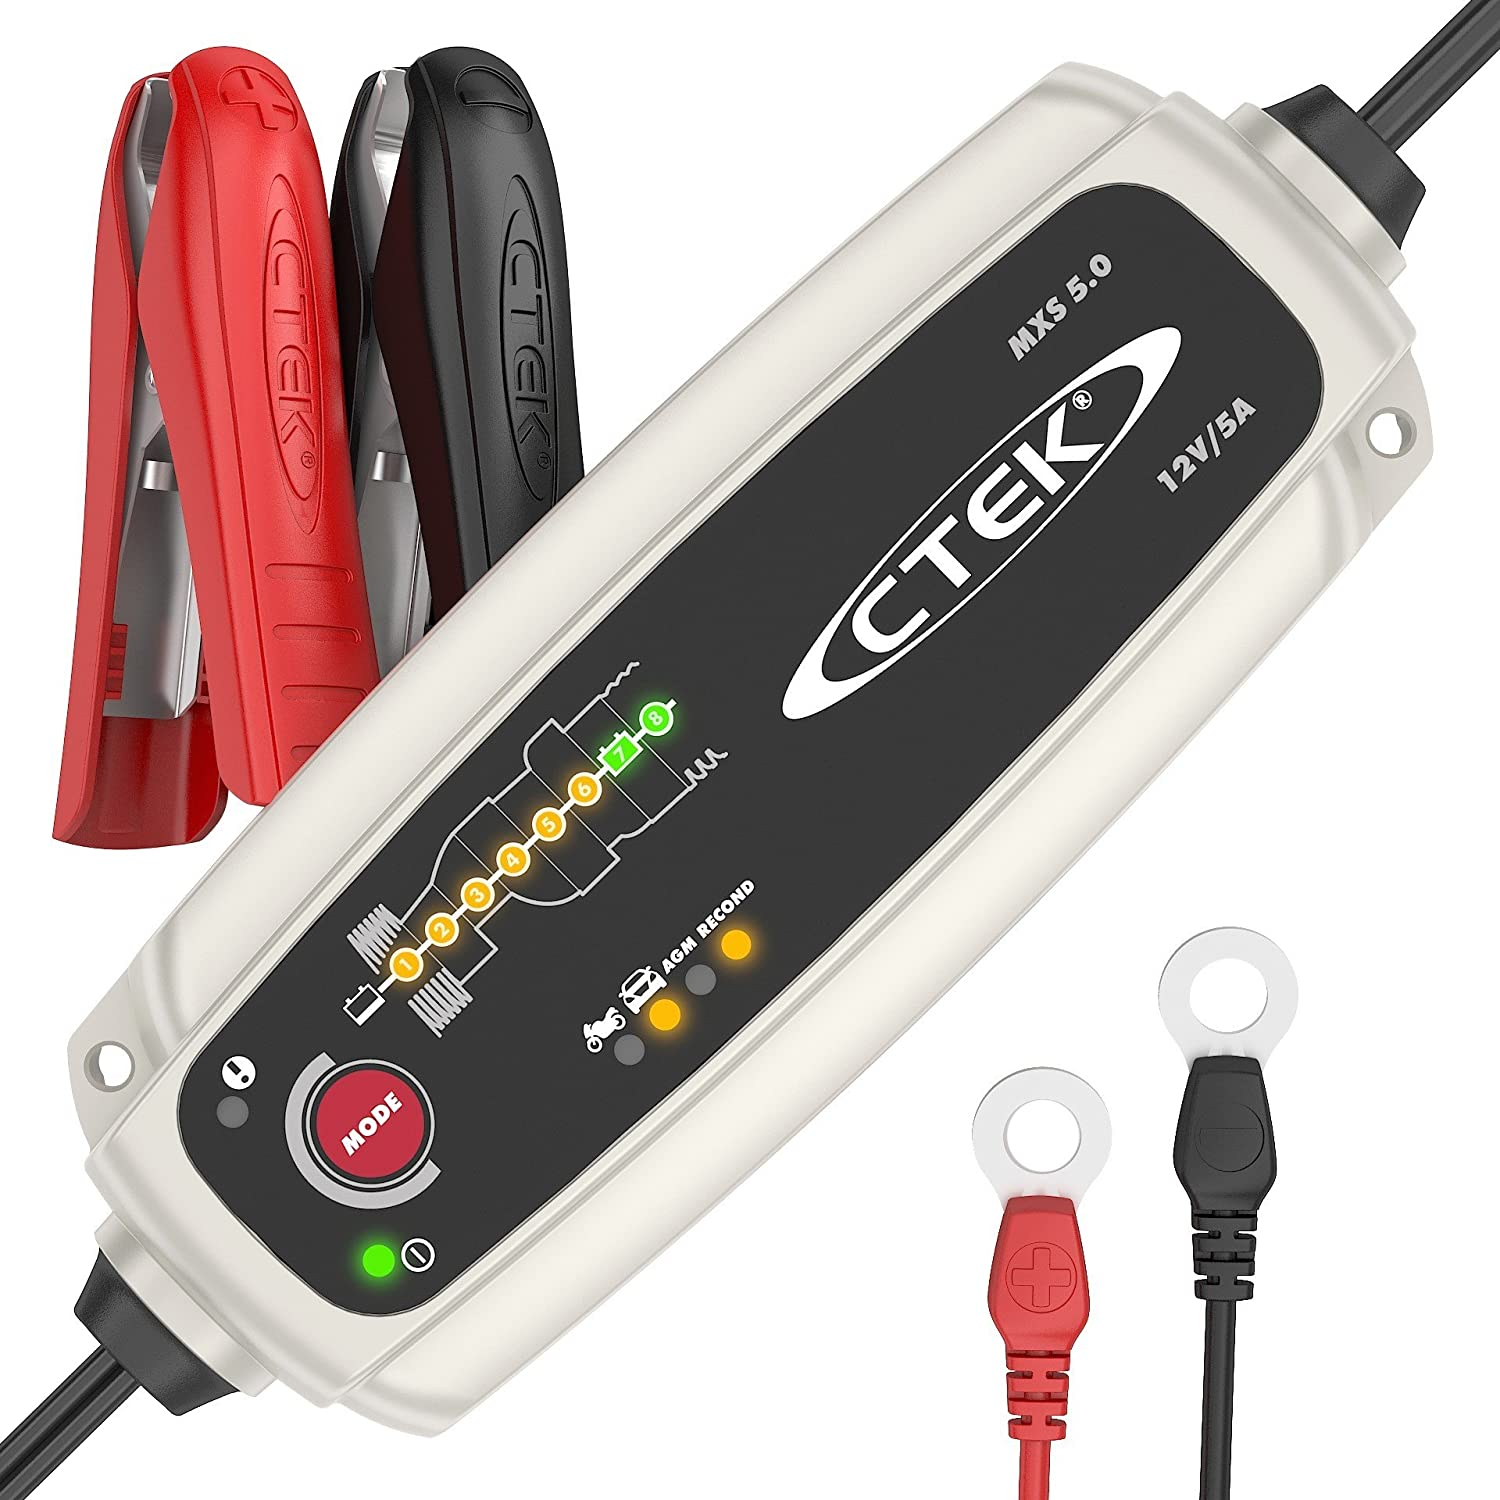 5 Amp 12V Basics USB-C Charges, Maintains and Reconditions Car and Motorcycle Batteries and USB-A 12W UK Plug CTEK MXS 5.0 Fully Automatic Battery Charger 15W Car Charger